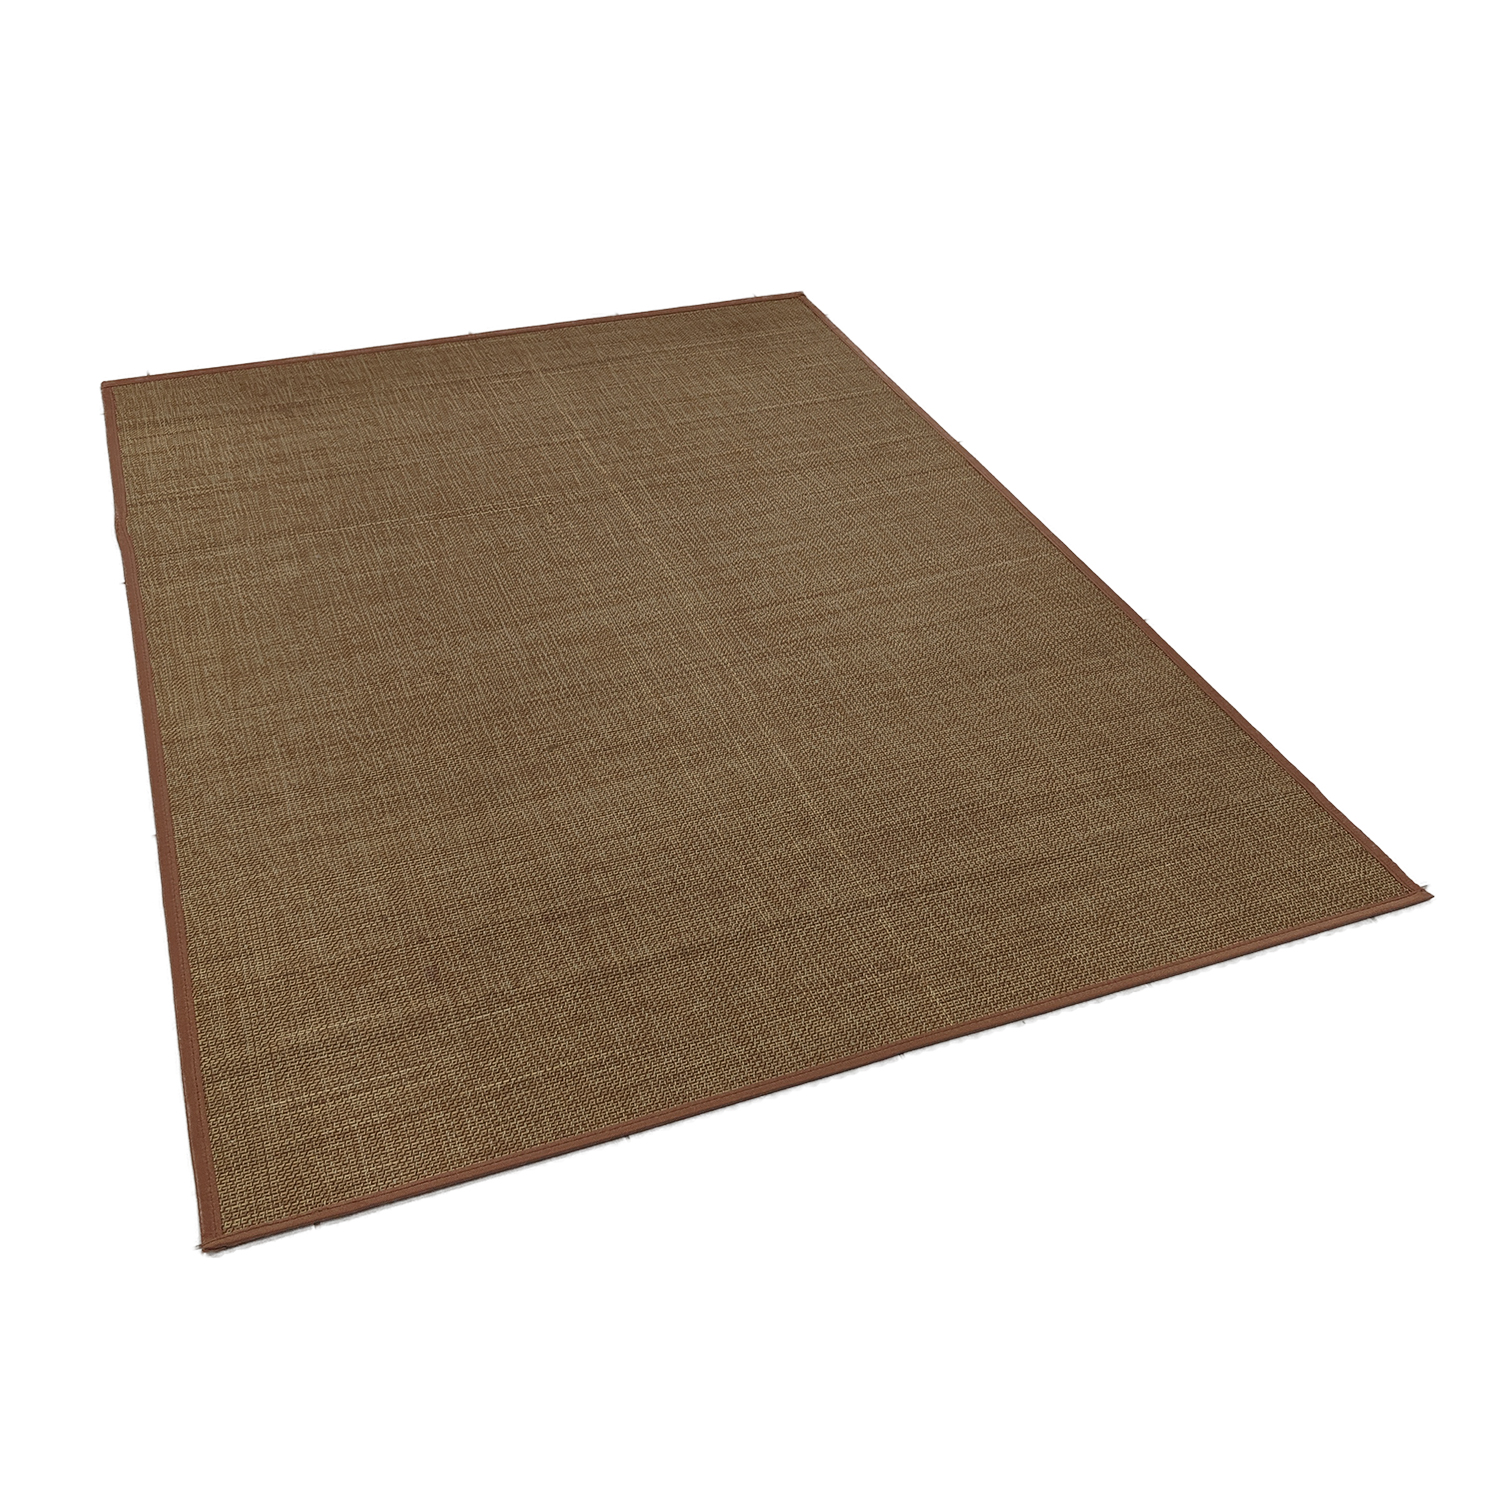 Tapis Bambou Naturel La Nouvelle Tablee